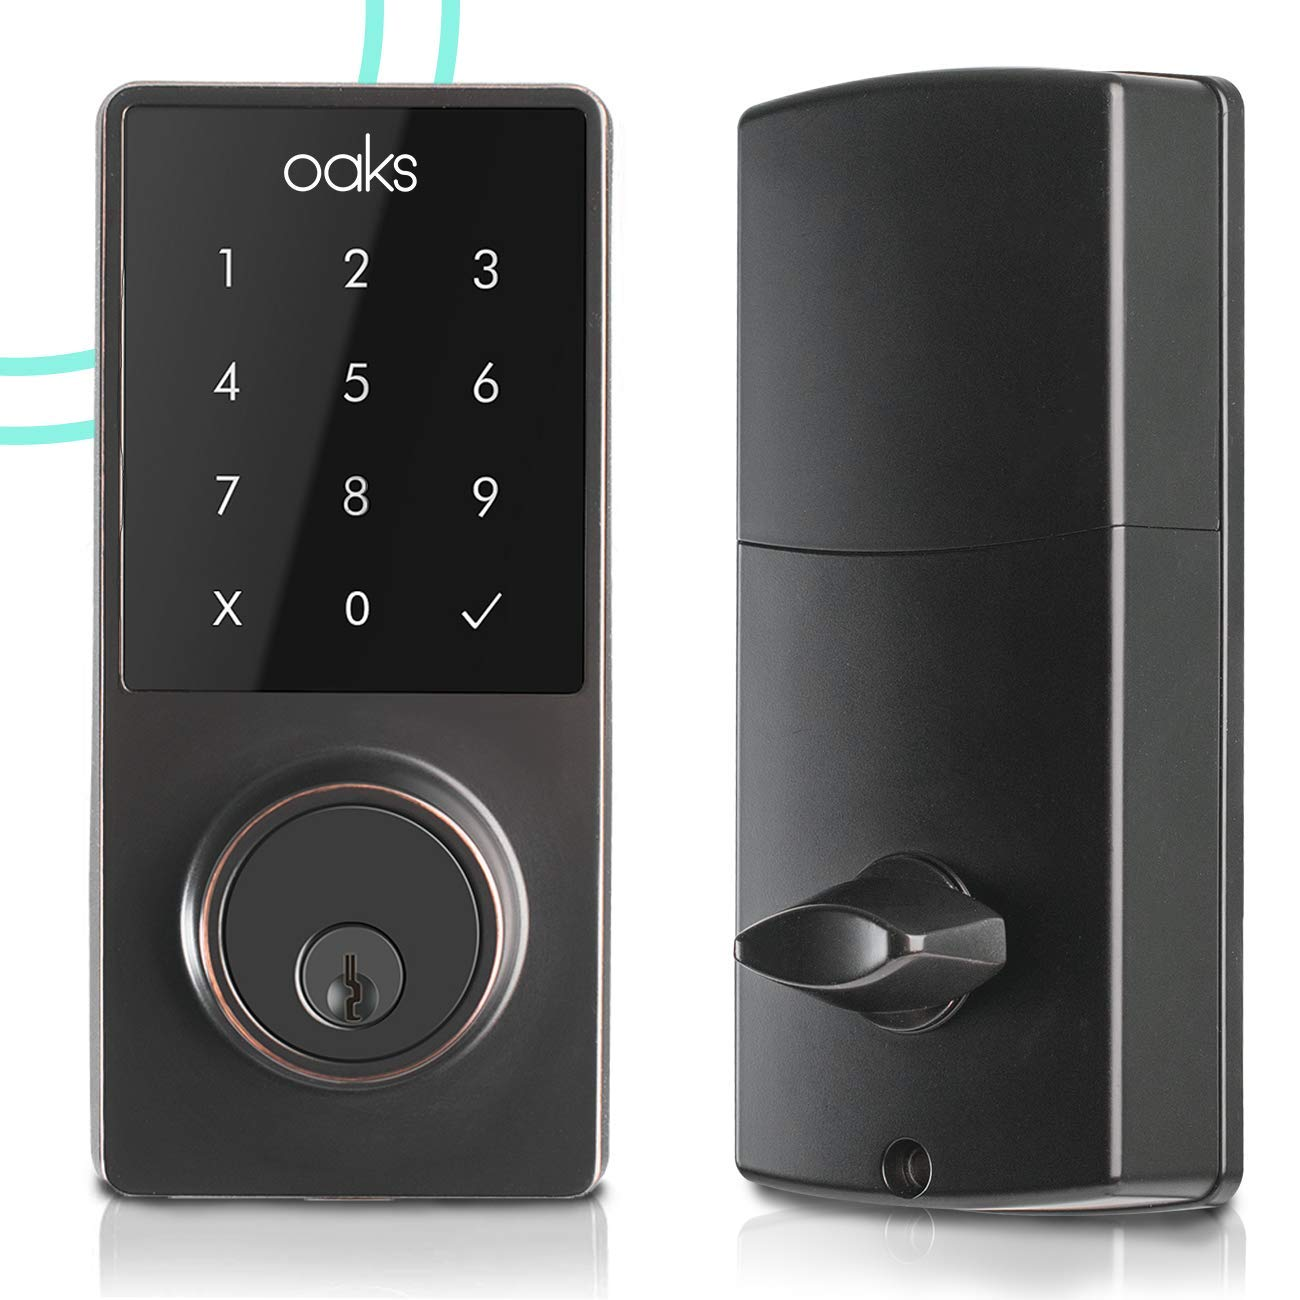 Review of Oaks Smart Electronic Front Door Deadbolt Bluetooth Lock